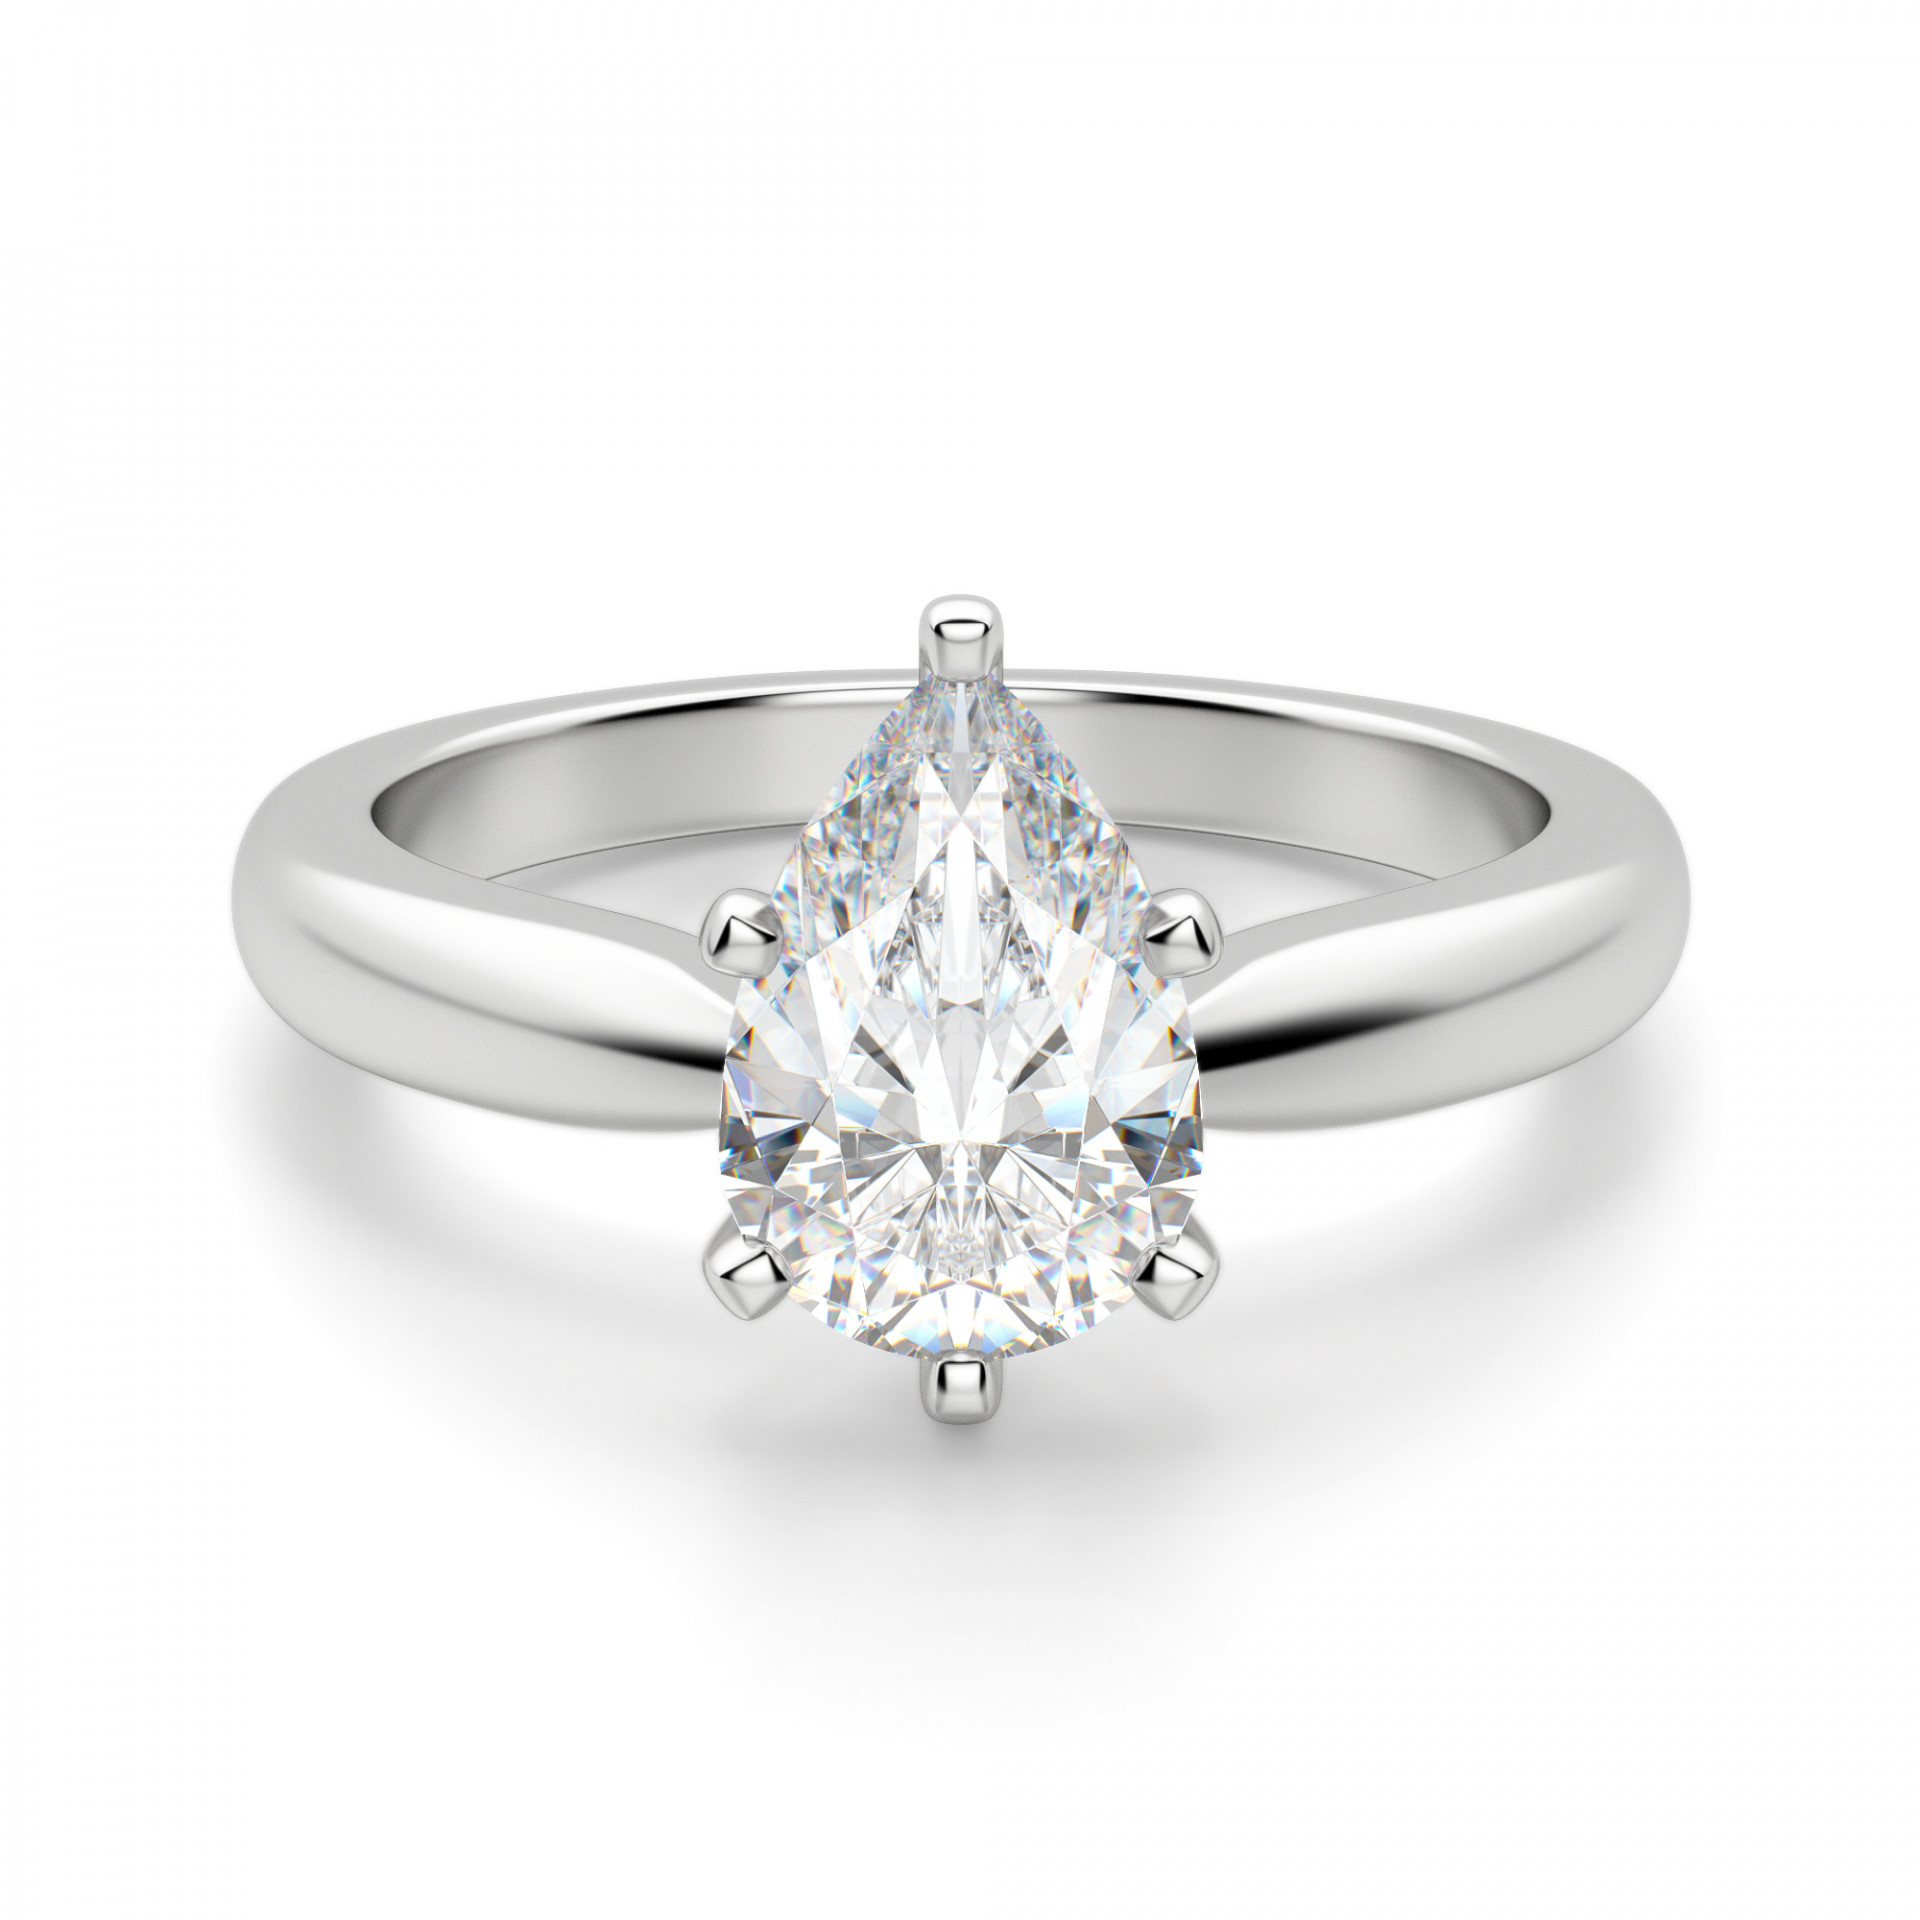 Tiffany Style Solitaire Pear Cut Engagement Ring With Regard To Pear Shaped Engagement Rings (View 10 of 25)